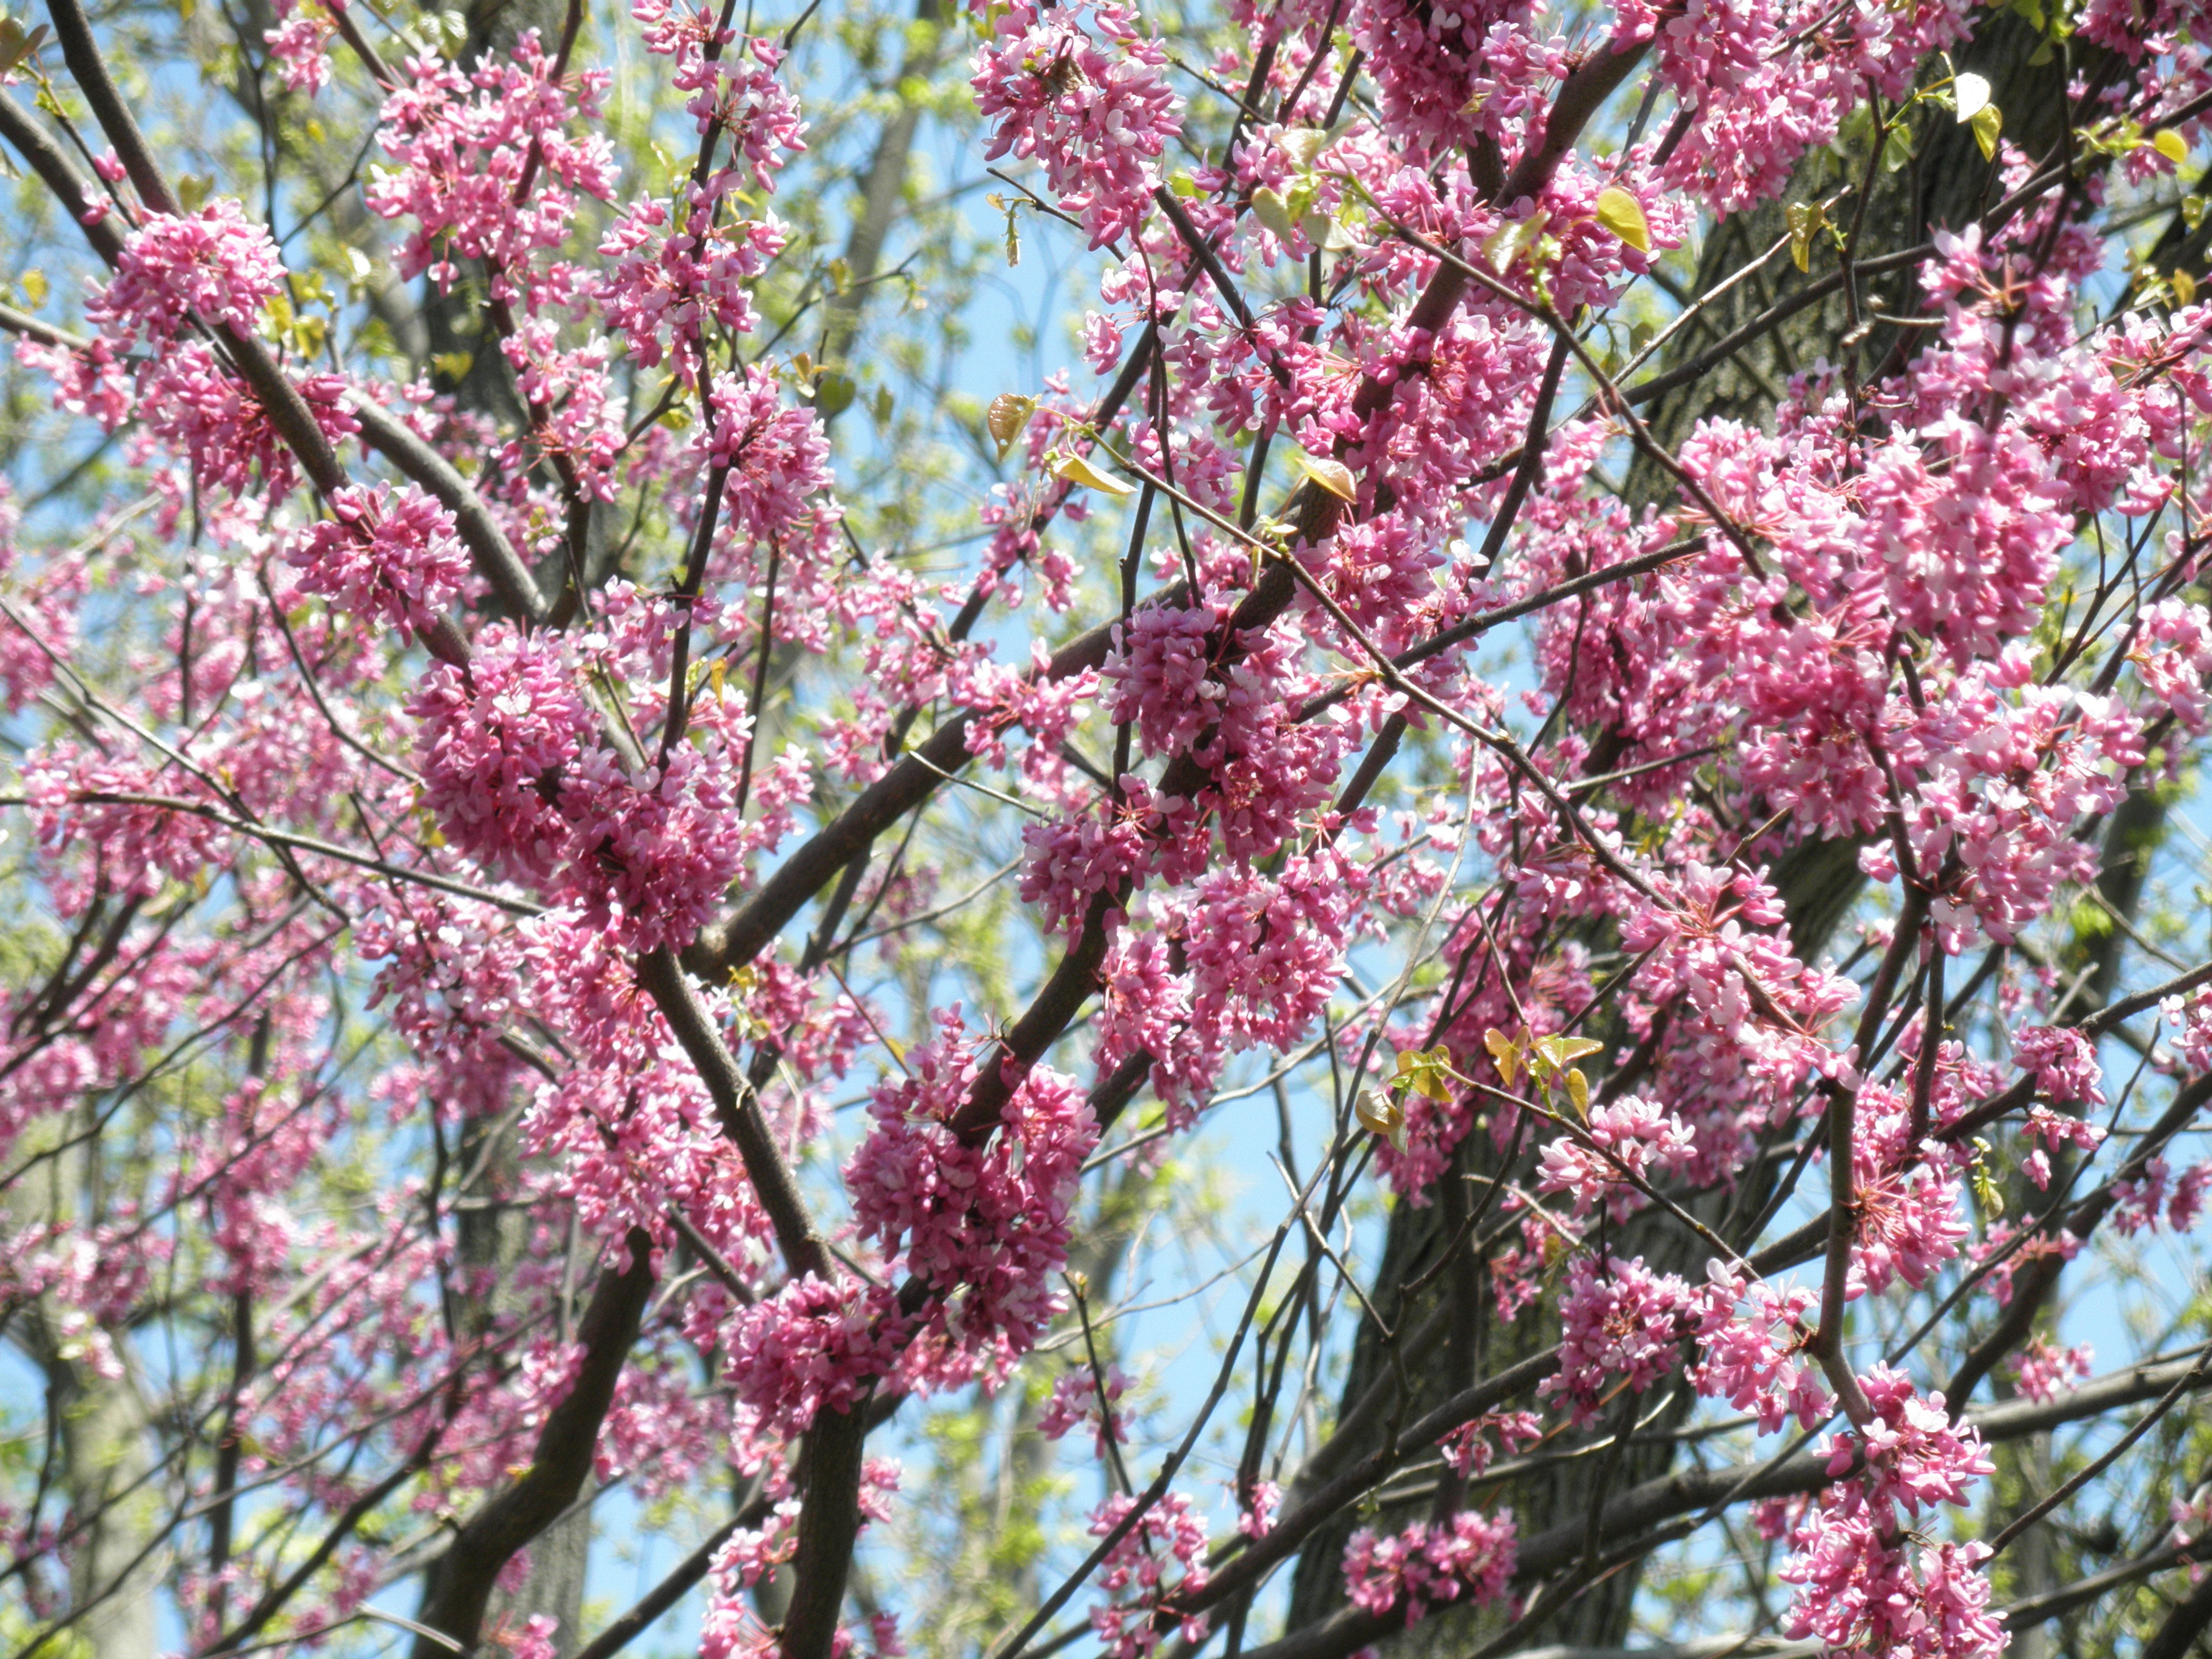 Eastern redbuds bloom early spring gorgeous pink flowers trees eastern redbuds bloom early spring gorgeous pink flowers mightylinksfo Image collections